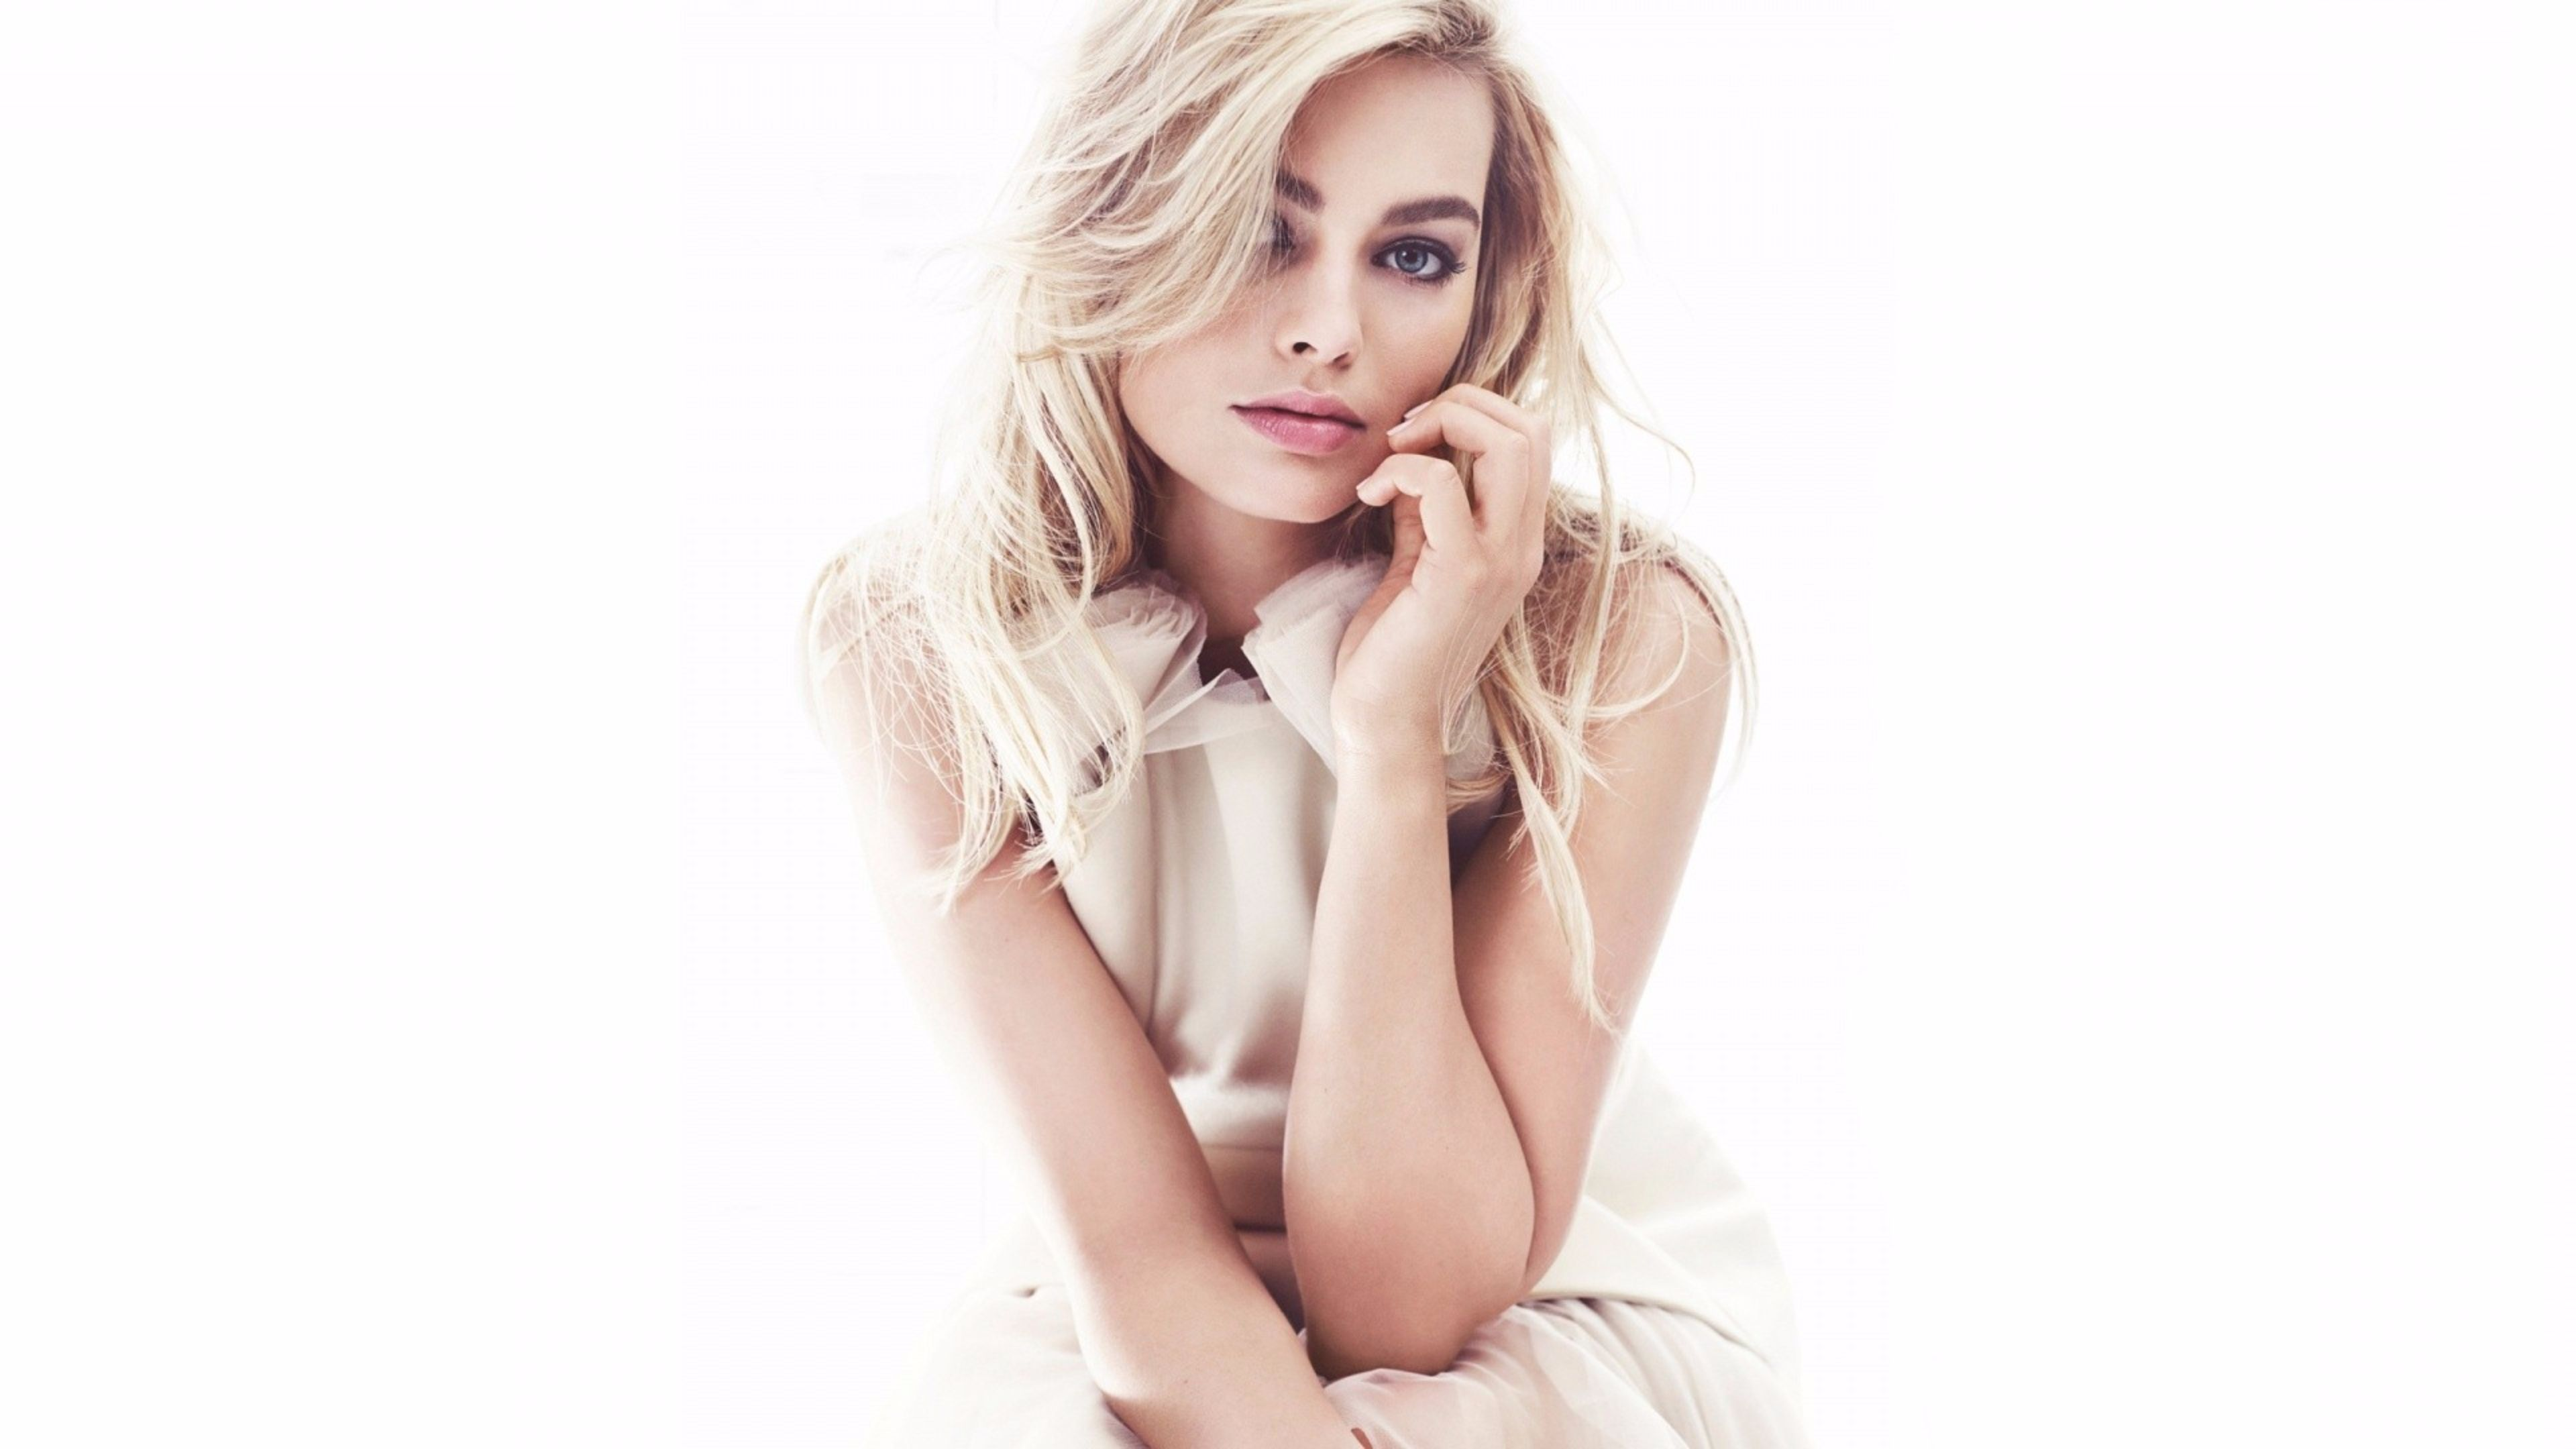 Margot Robbie hot